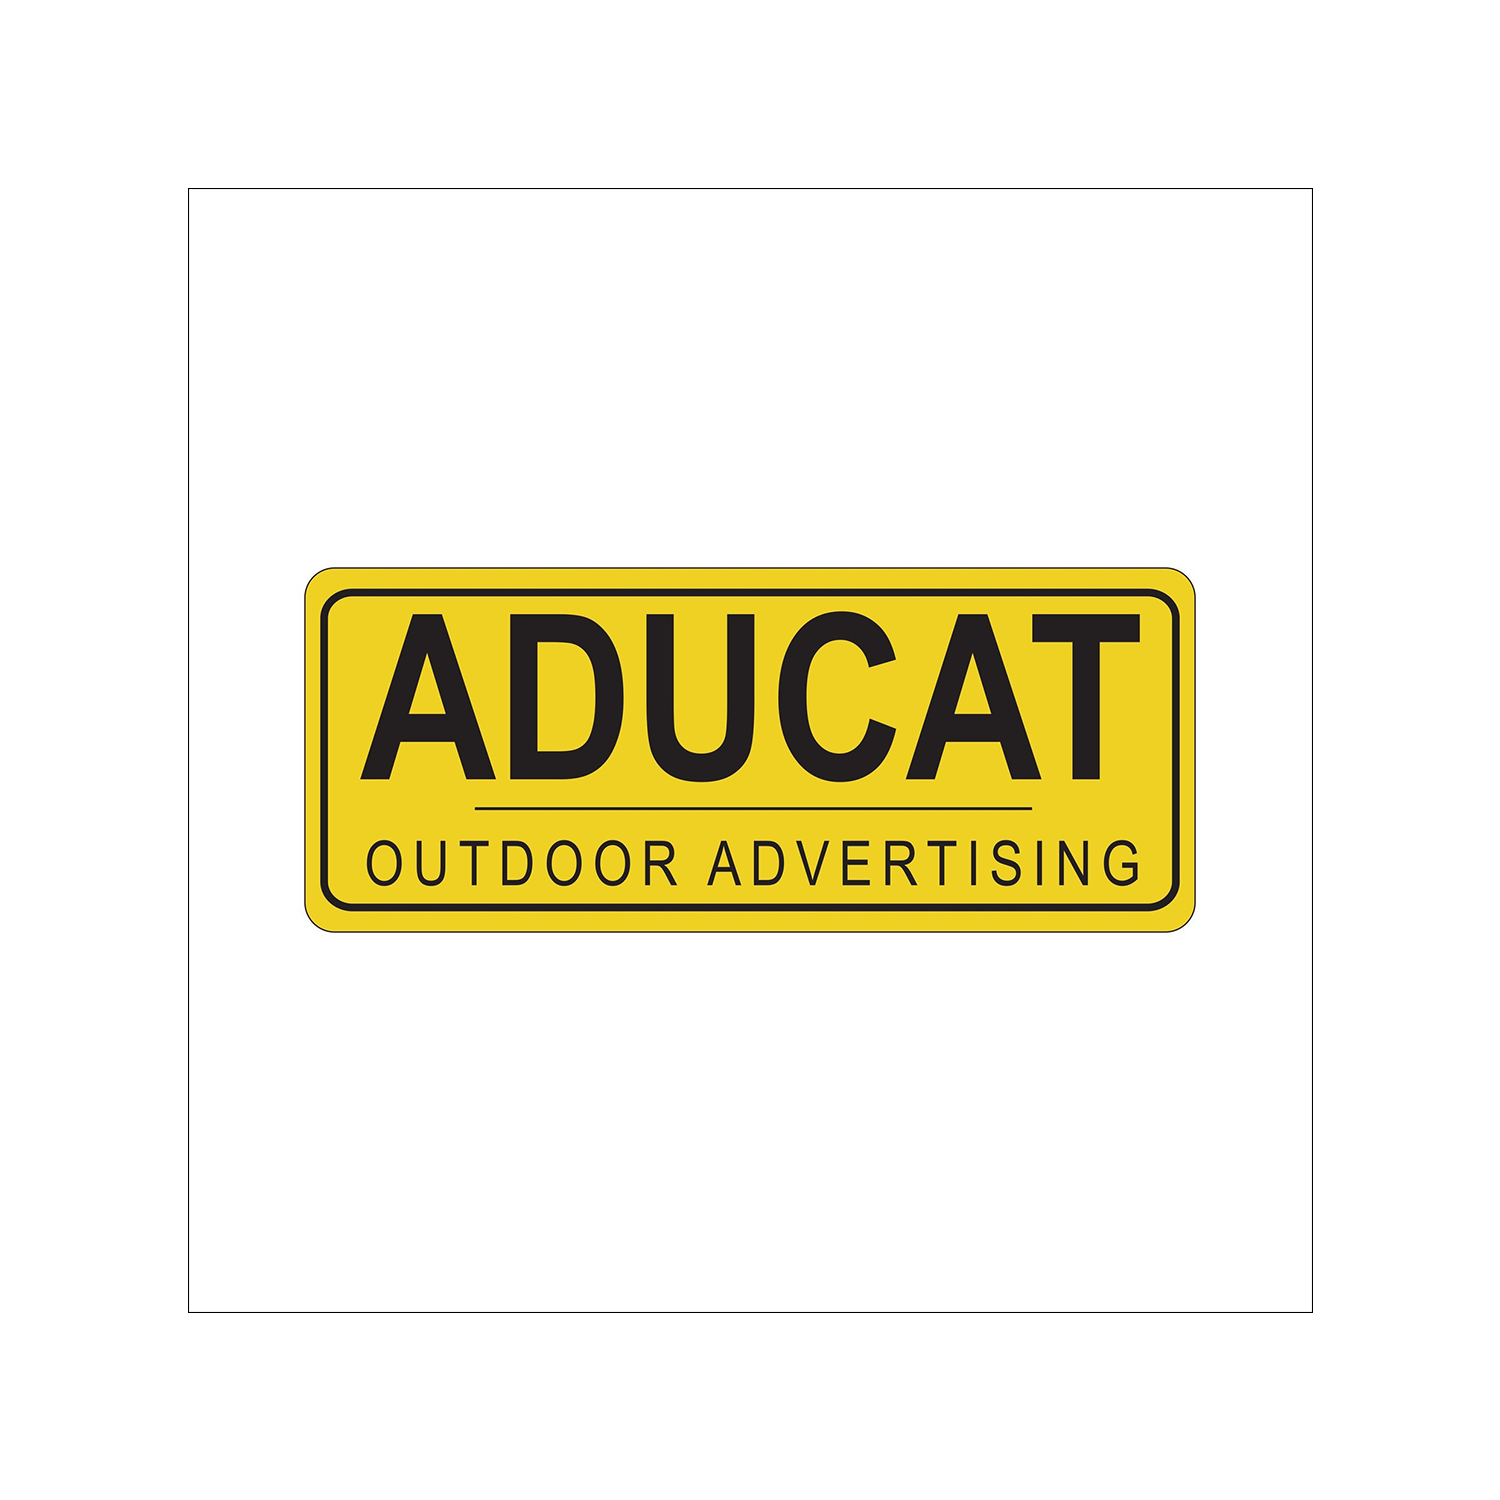 ADUCAT Outdoor Advertising